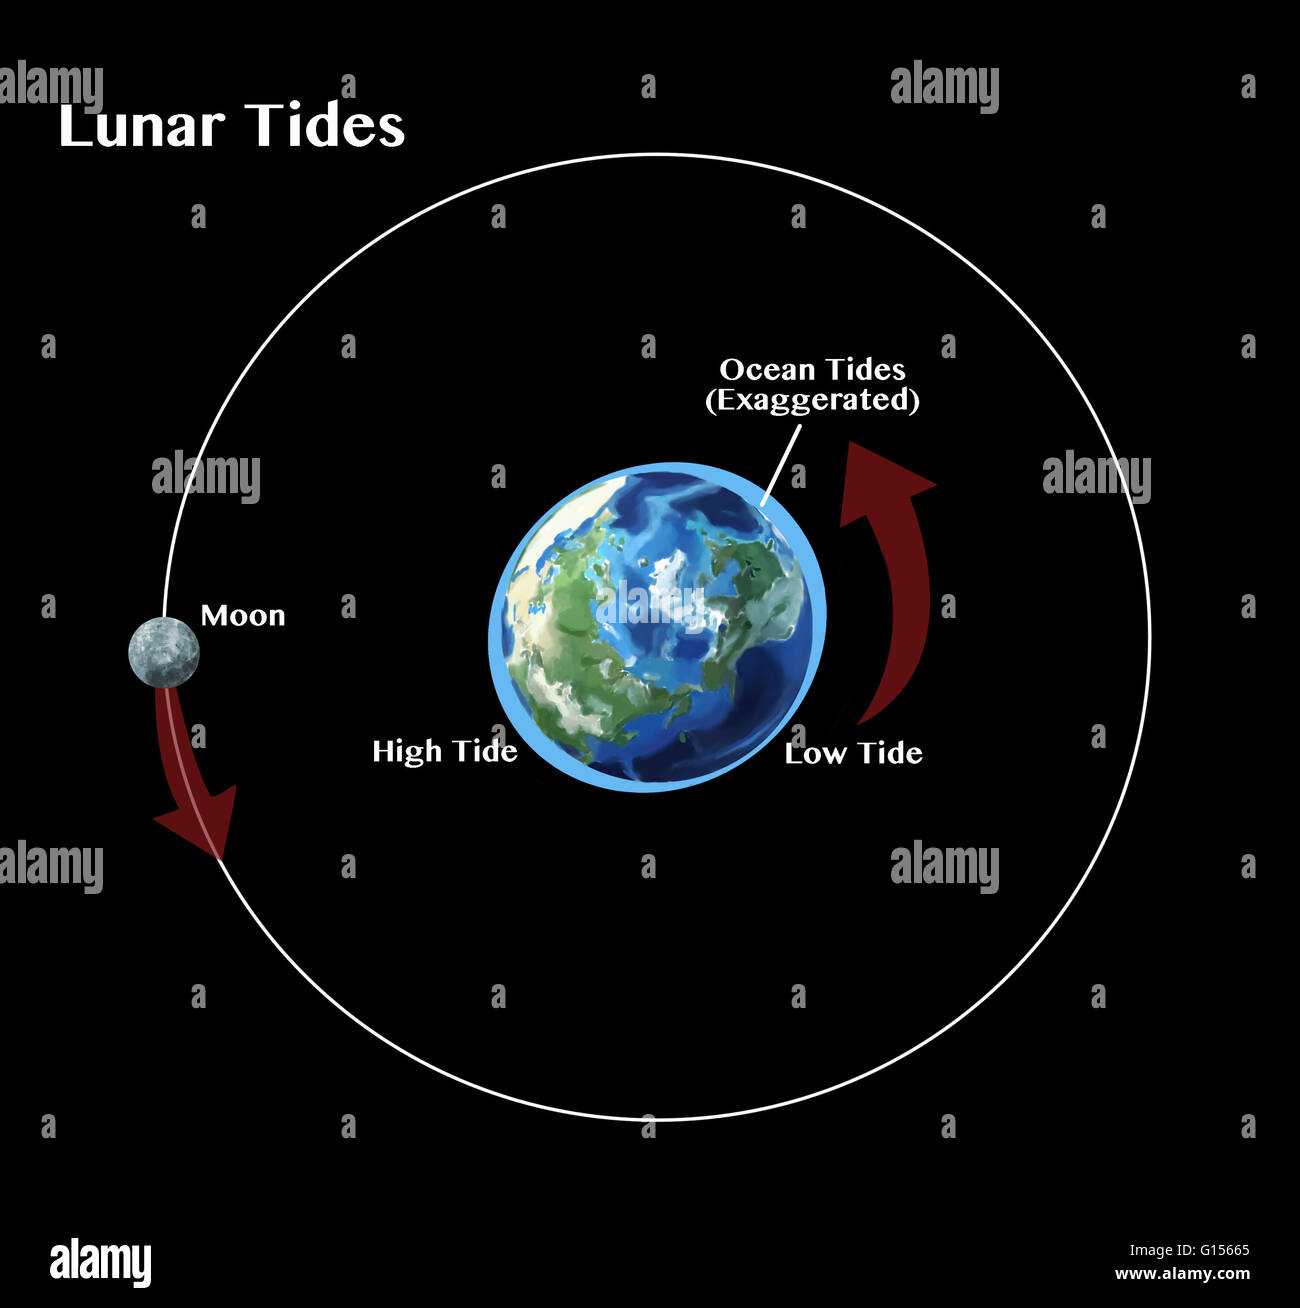 tides the rise and fall of sea levels are caused by the gravitational G15665 earth rotation diagram stock photos & earth rotation diagram stock